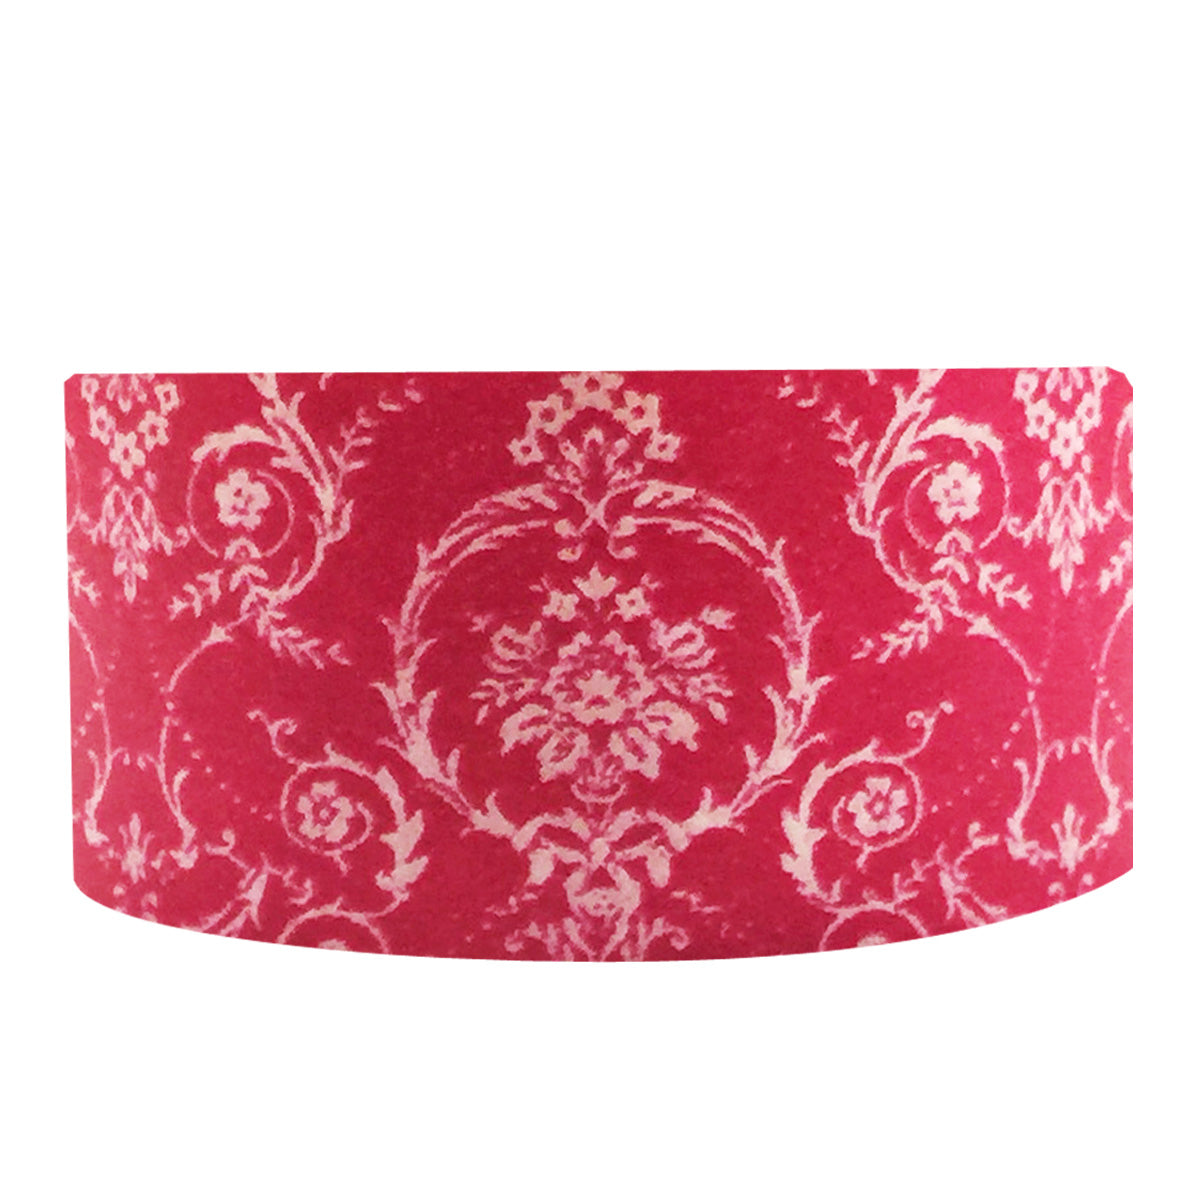 Wrapables Damask Washi Masking Tape, Royal Red